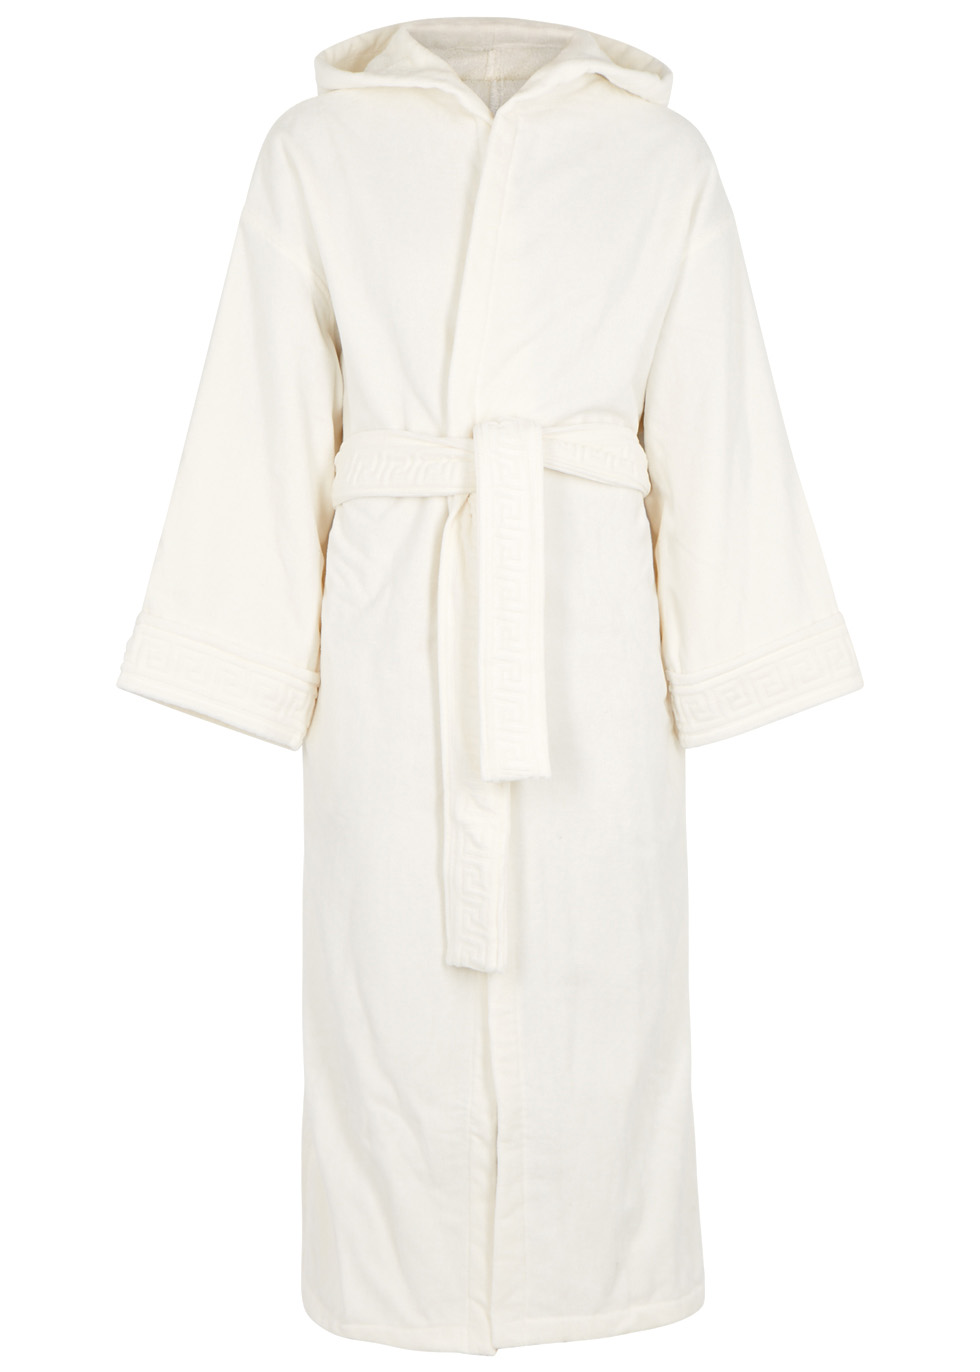 IVORY MEDUSA COTTON ROBE